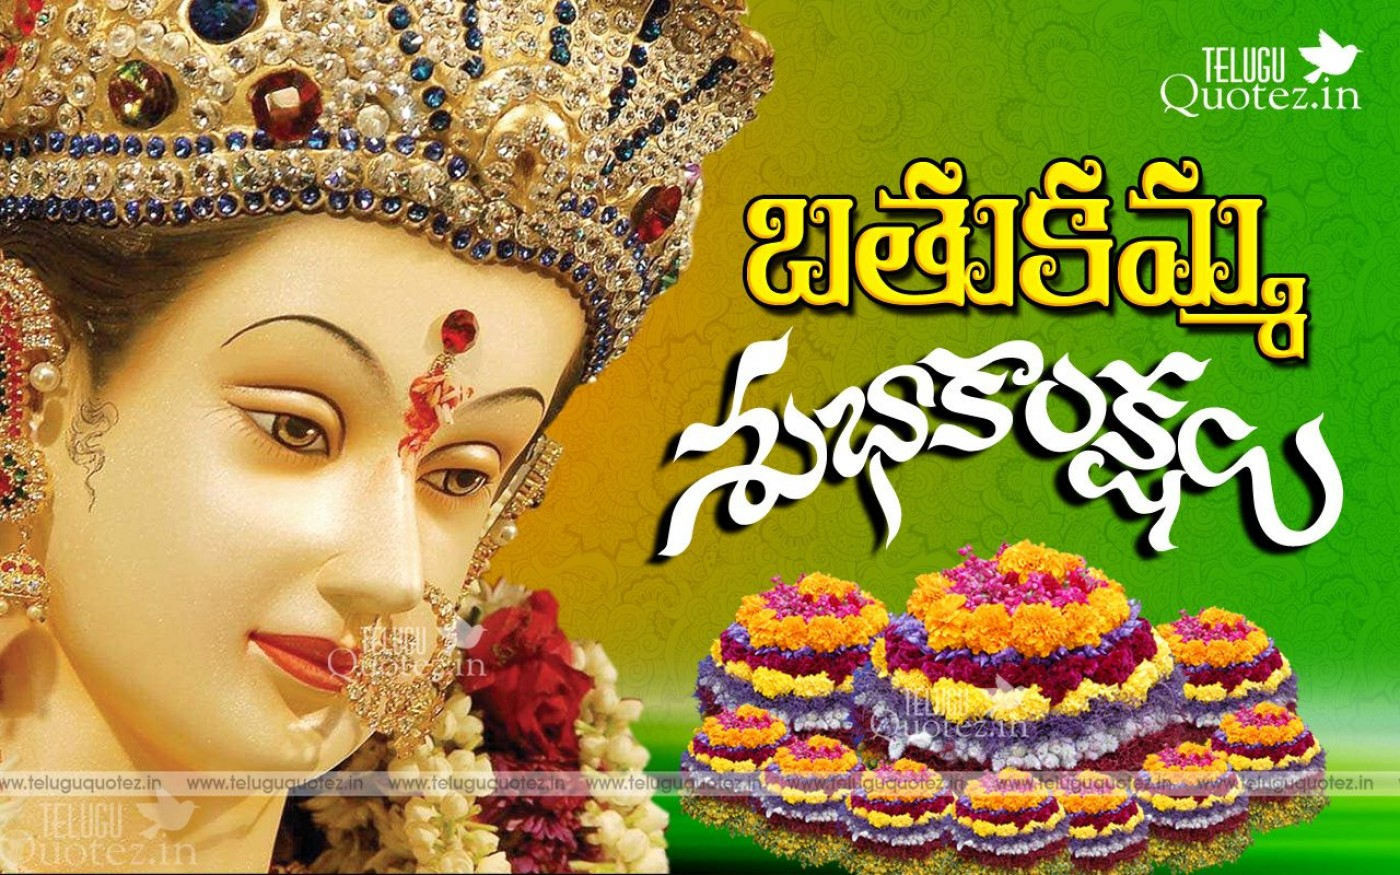 004 Essay On Bathukamma In Telugu Dreaded Short Language 1400